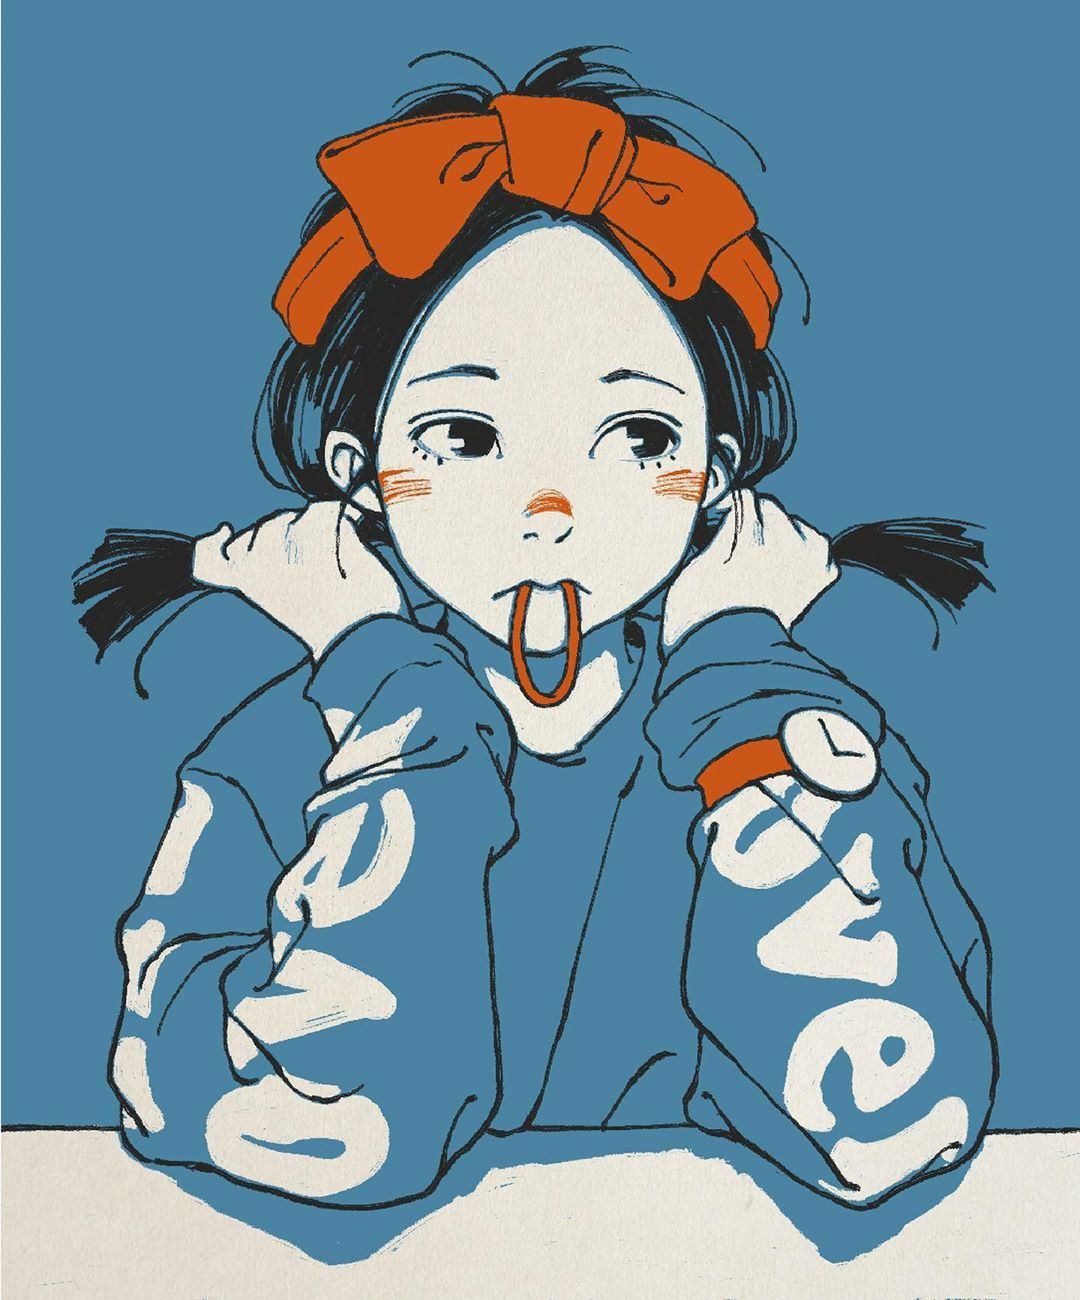 Pin by amarahiko on イラスト | Character art, Cute drawings ...